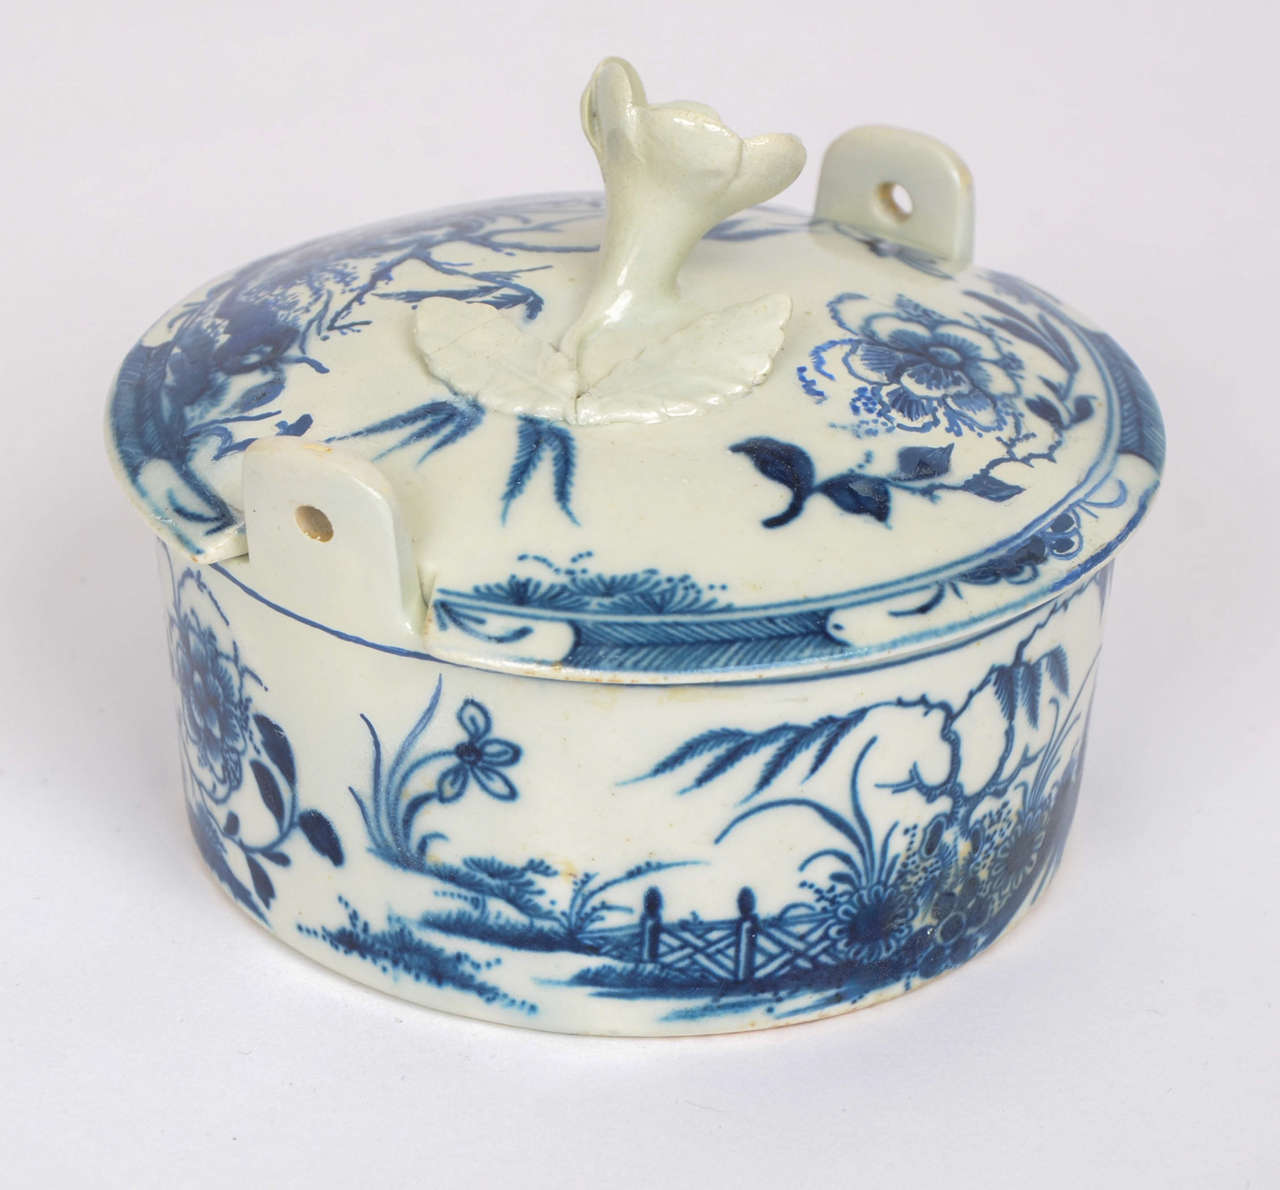 Rare first period worcester blue and white porcelain for Porcelain bathtubs for sale